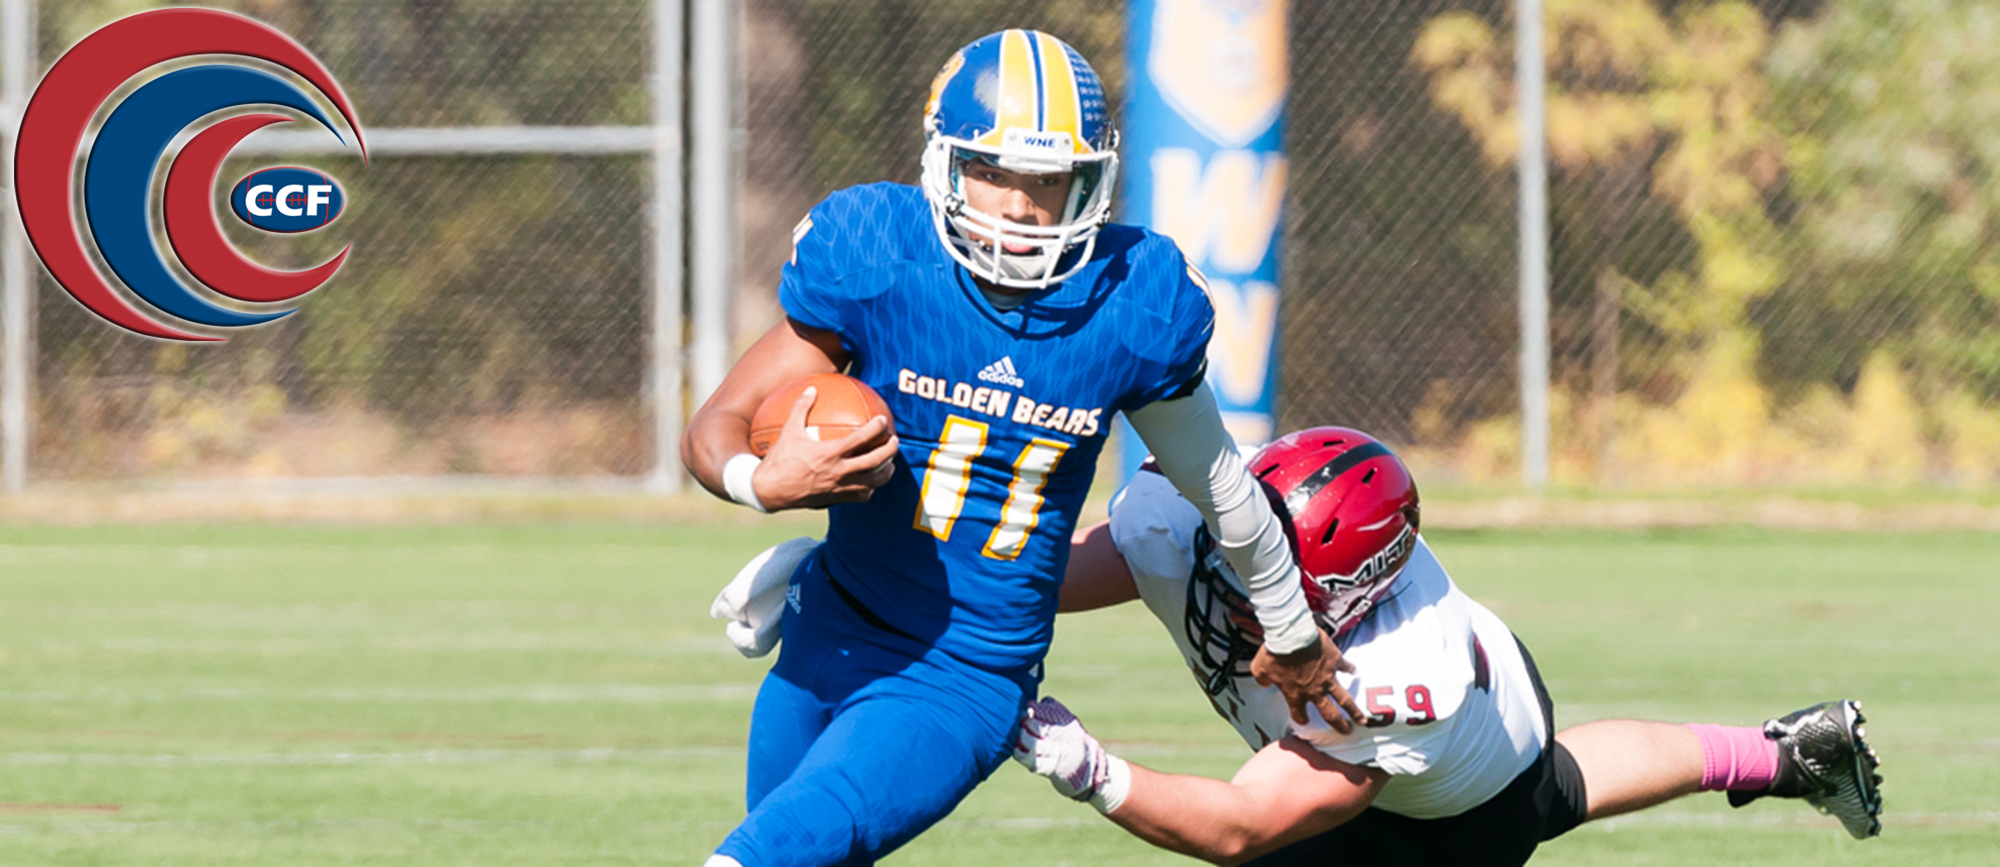 No. 24 Western New England Takes Top Spot In Inaugural CCC Football Preseason Coaches' Poll